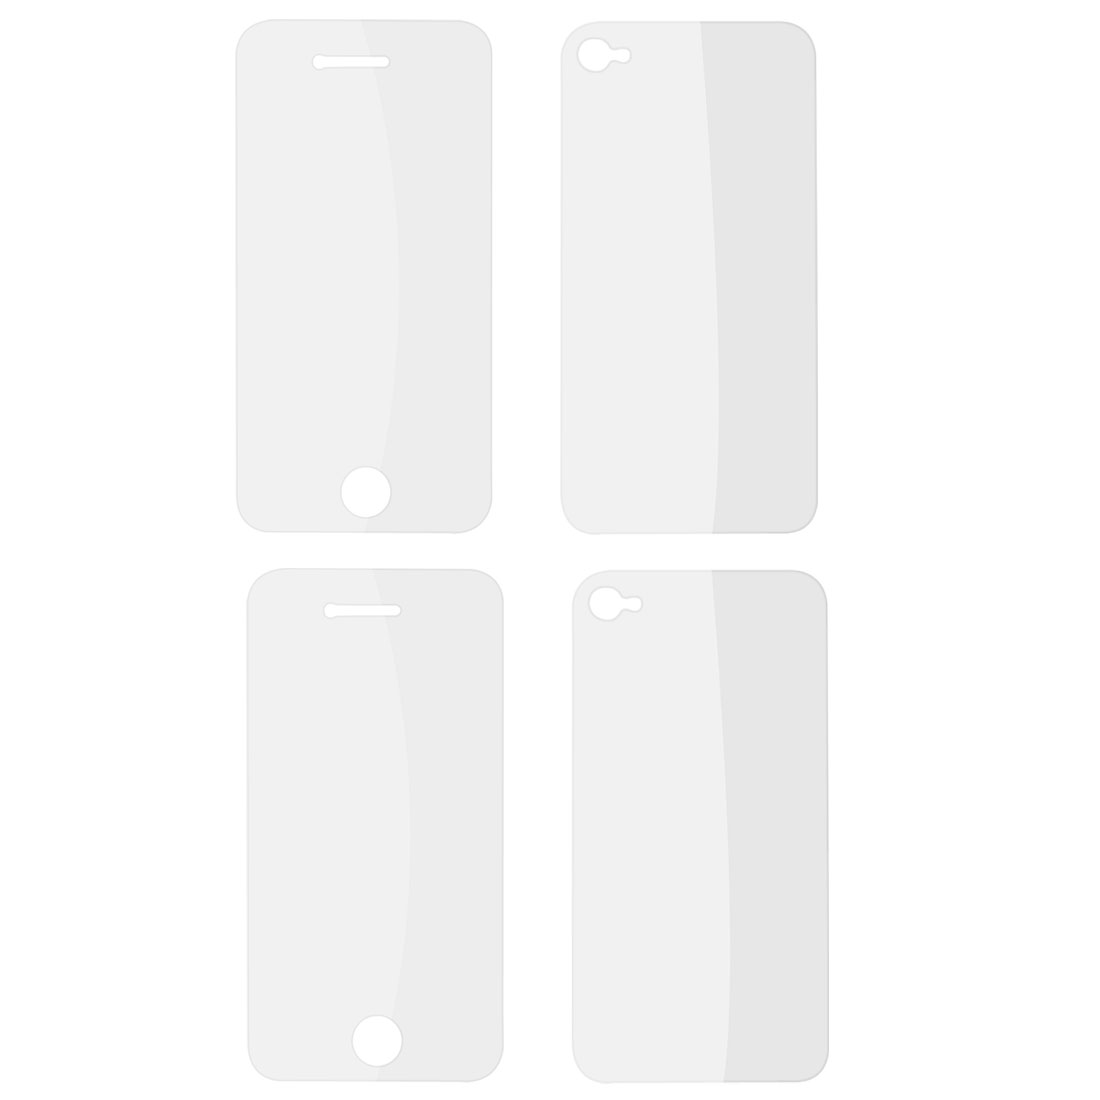 2 Pcs Anti-Glare Screen Protective Protector Film Front Back for iPhone 4 4G 4S 4GS